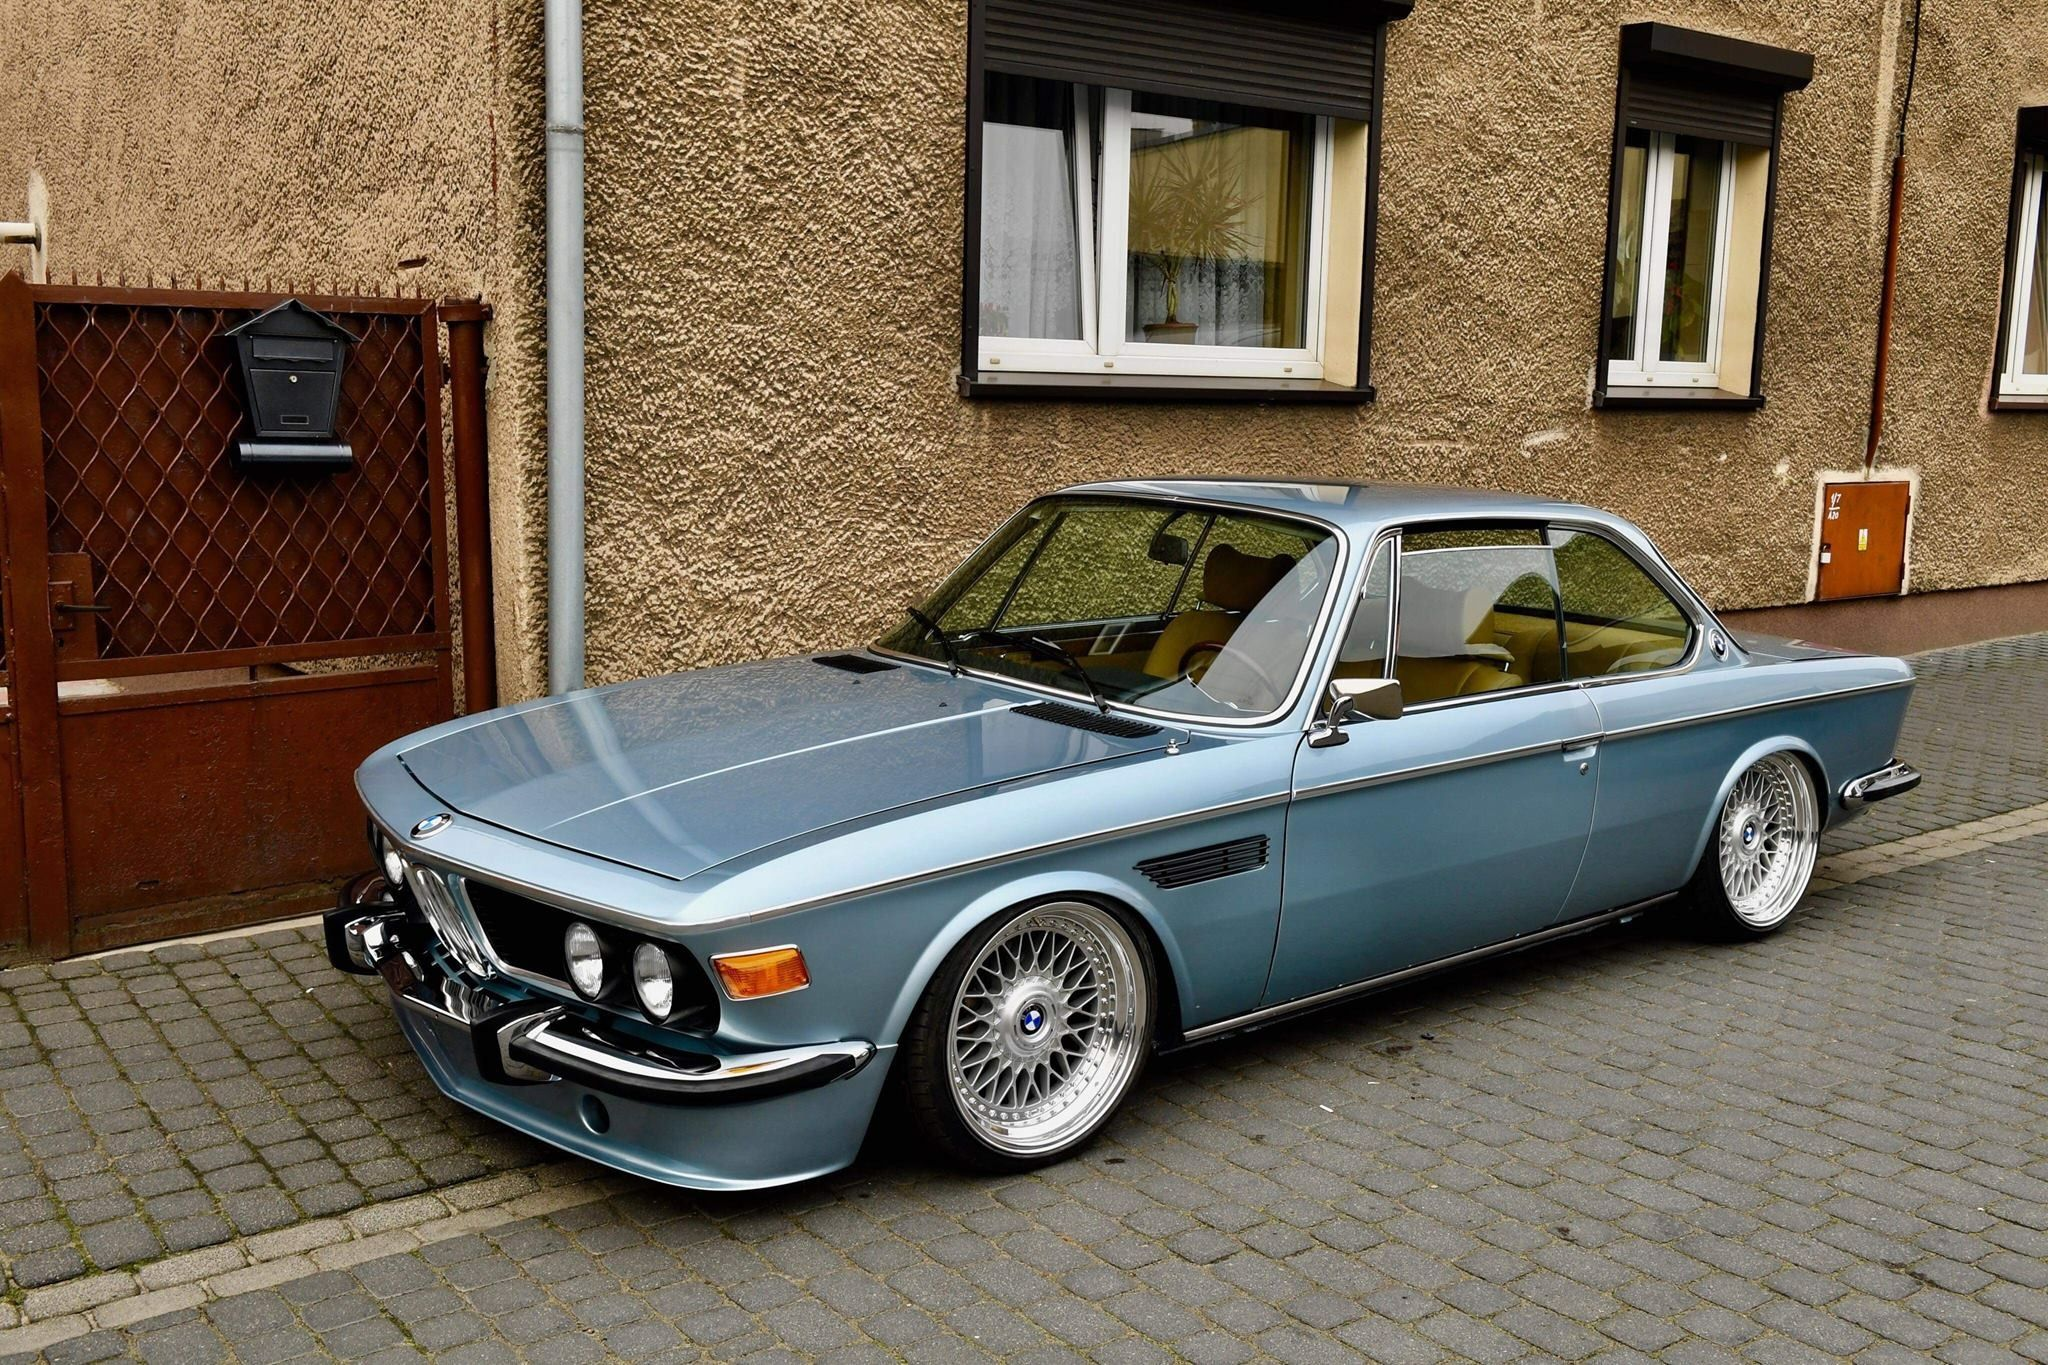 Pin By Nik Tsapas On Youngtimers Of My Generations 70 S 80 S Early 90 S Bmw E9 Bmw Classic Bmw Classic Cars